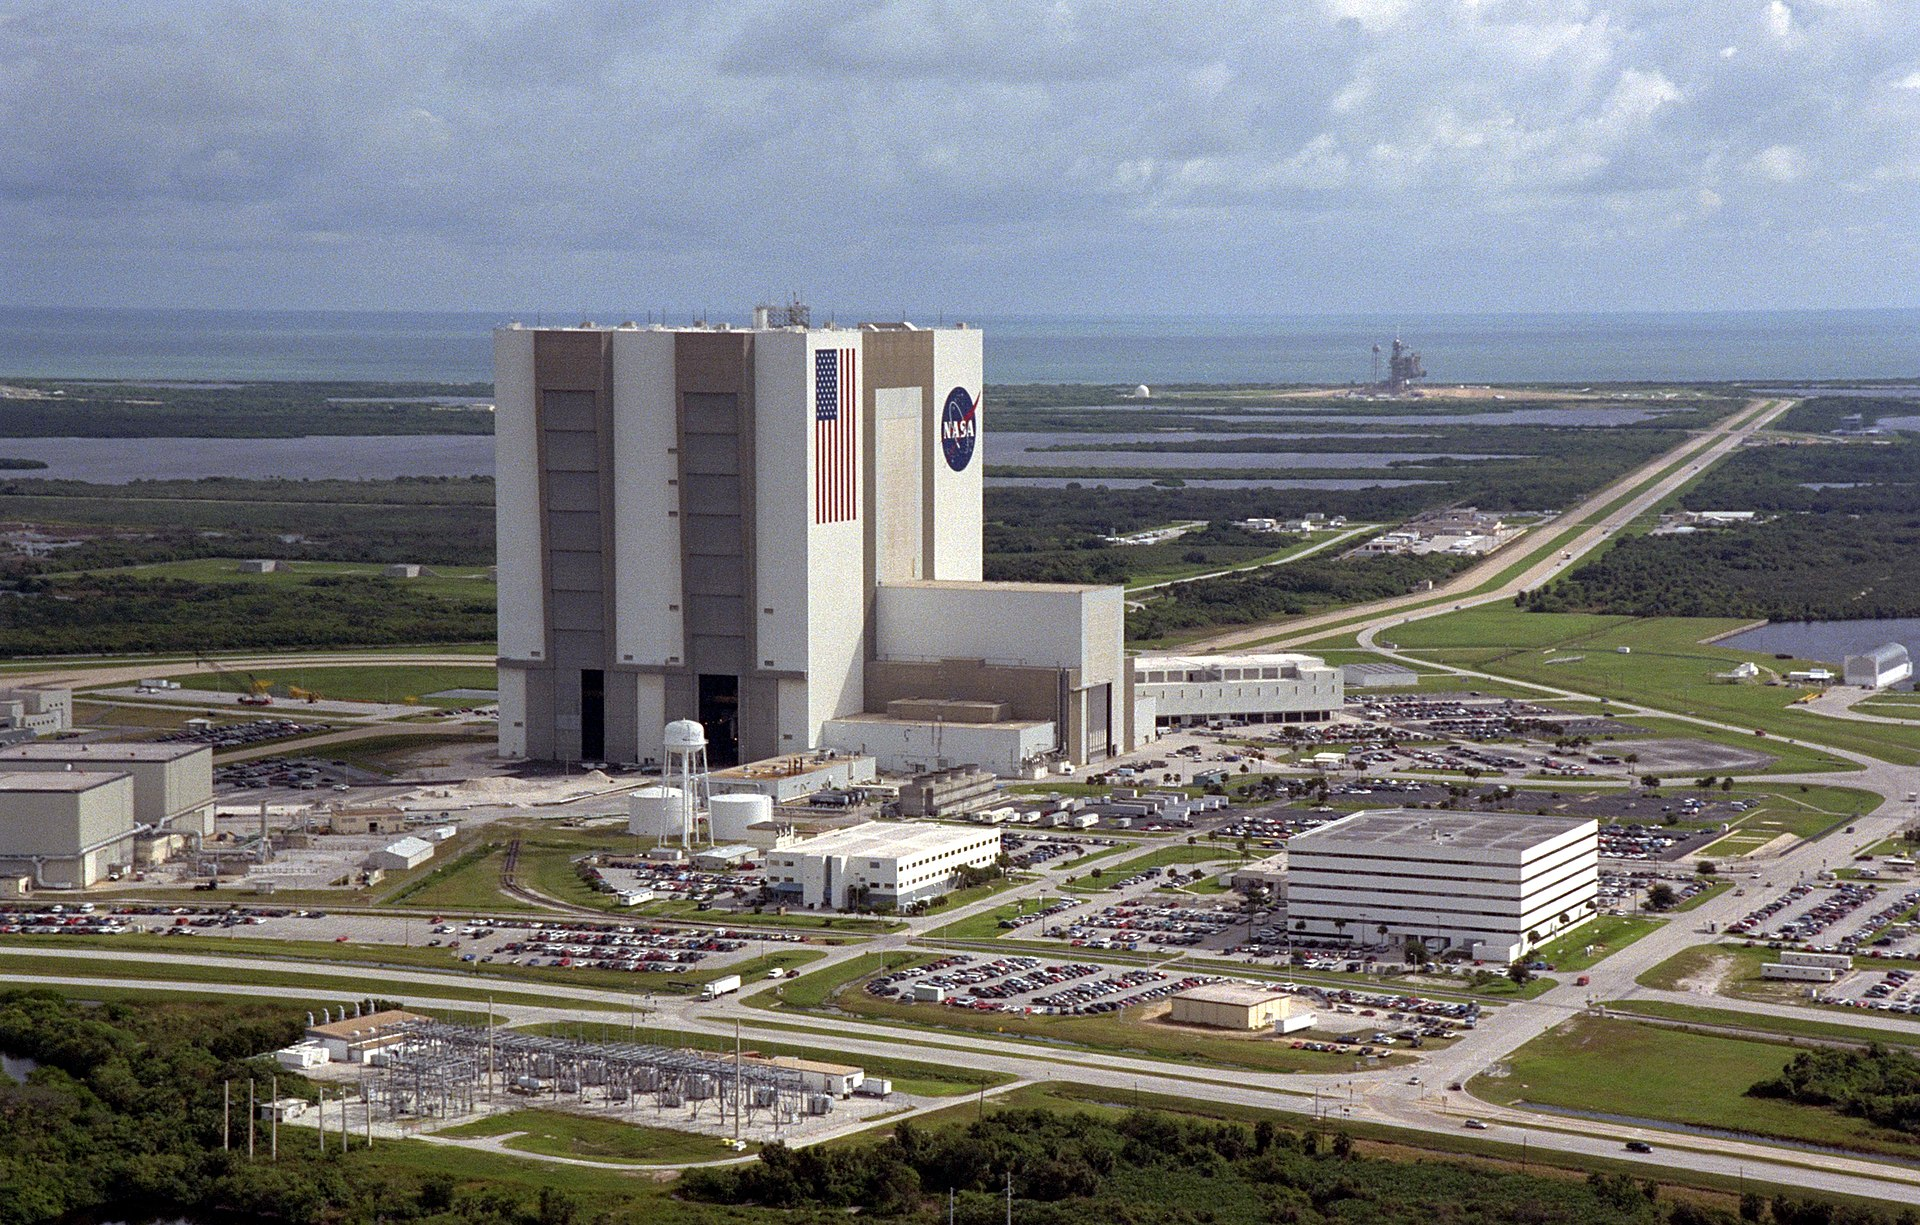 Kennedy Space Center Vehicle Assembly Building - VAB